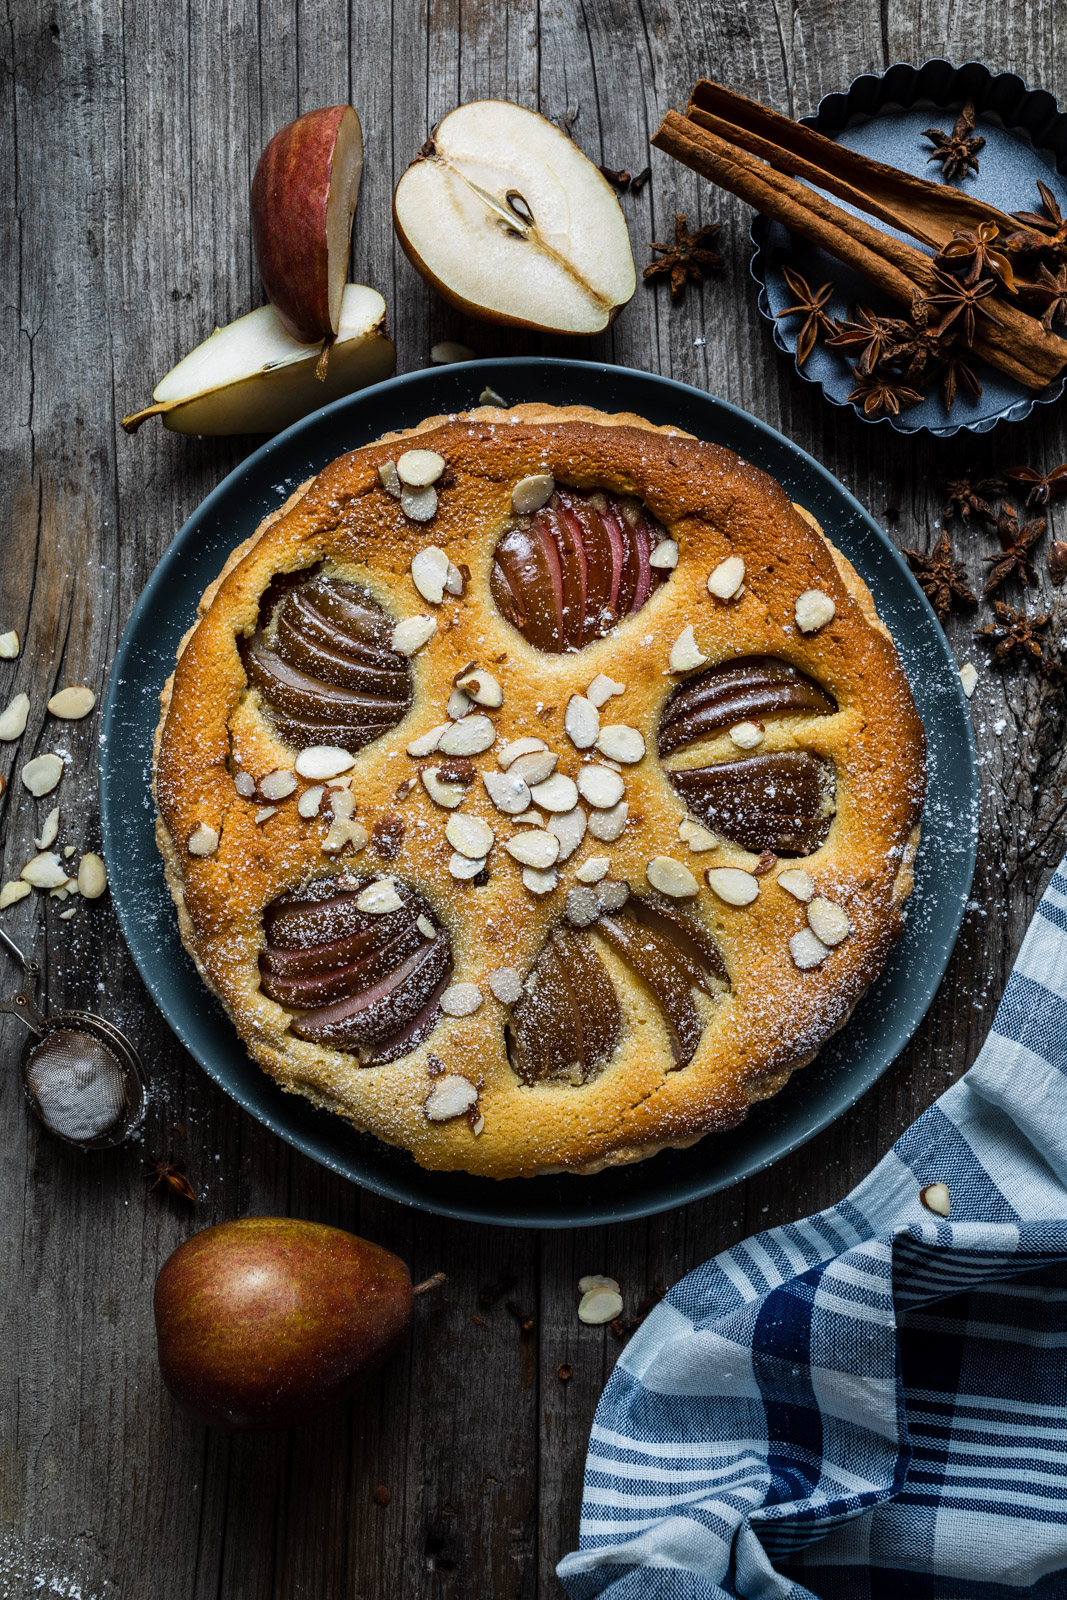 Poached Pear and Almond Tart